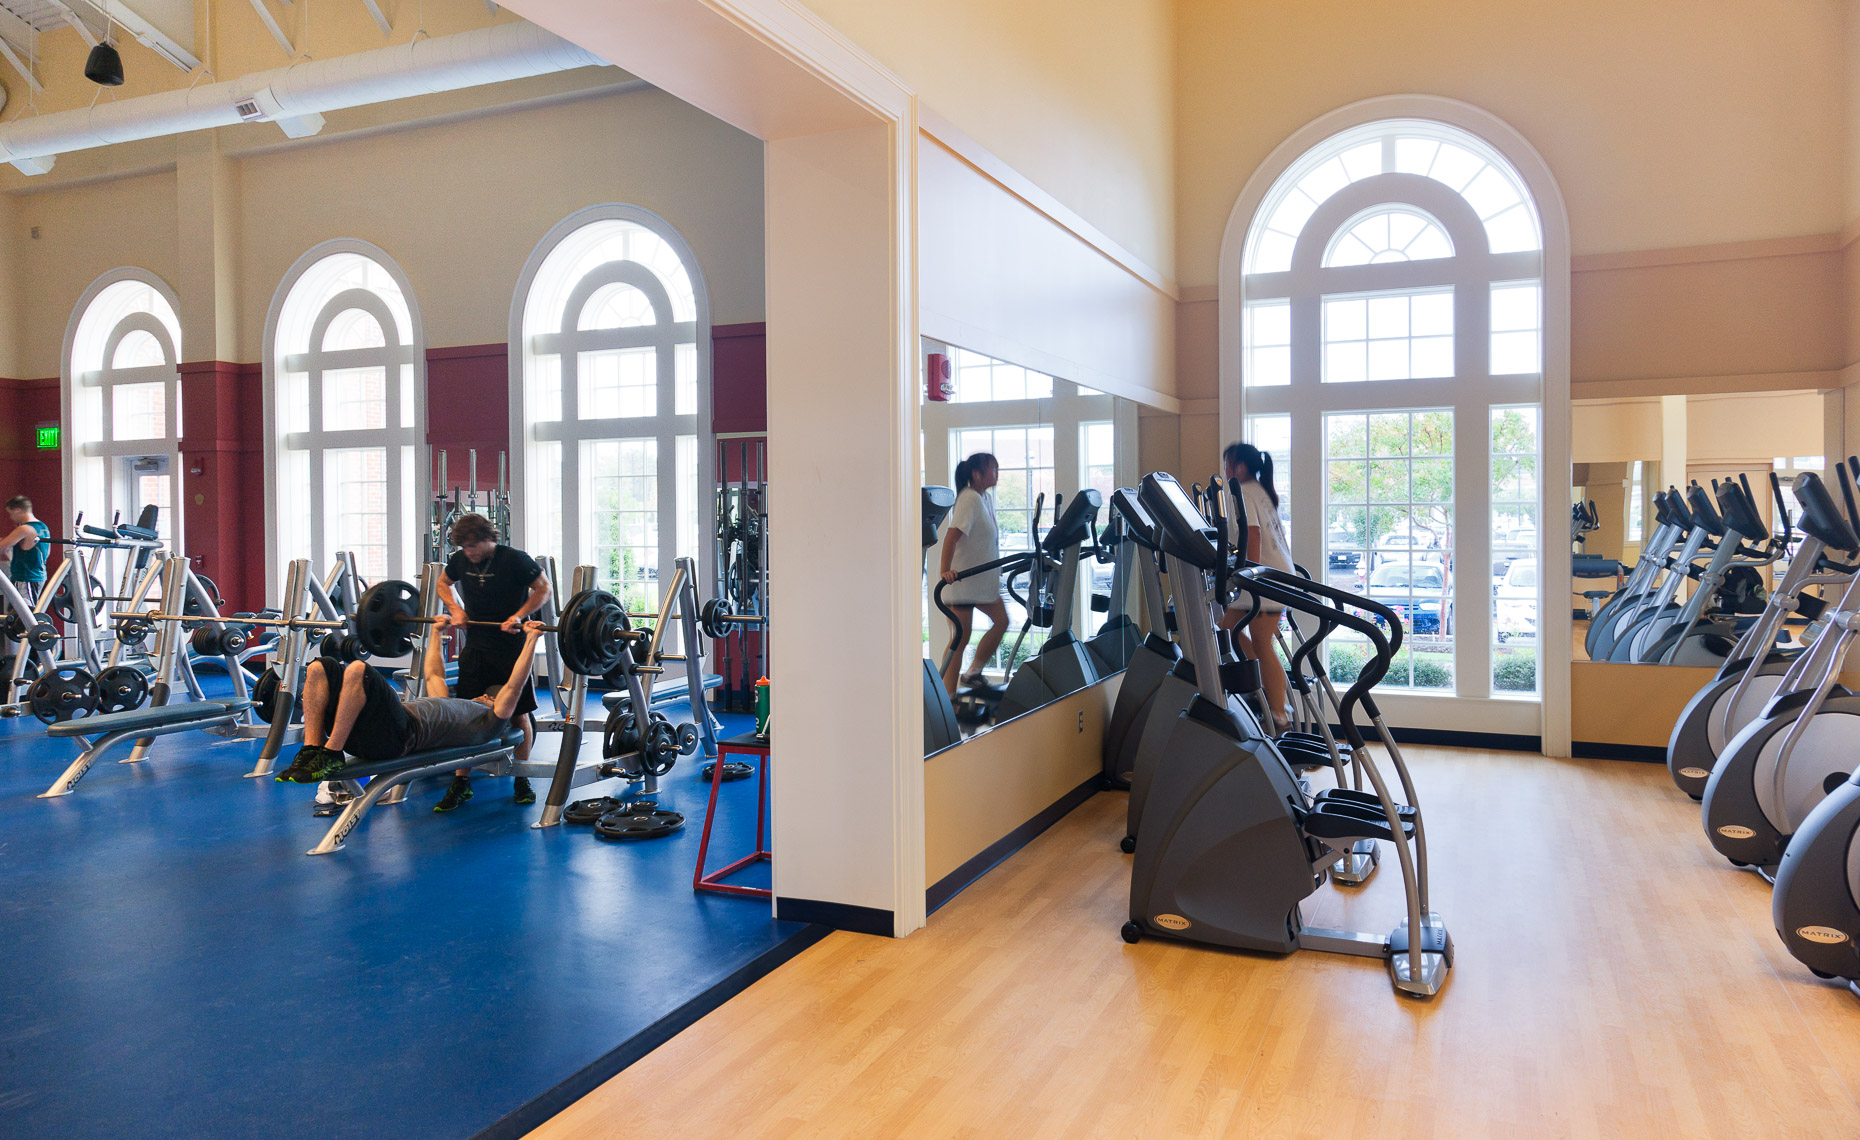 Virginia Hamrick Photography - Freeman Center Fitness Center - CNU - Academia